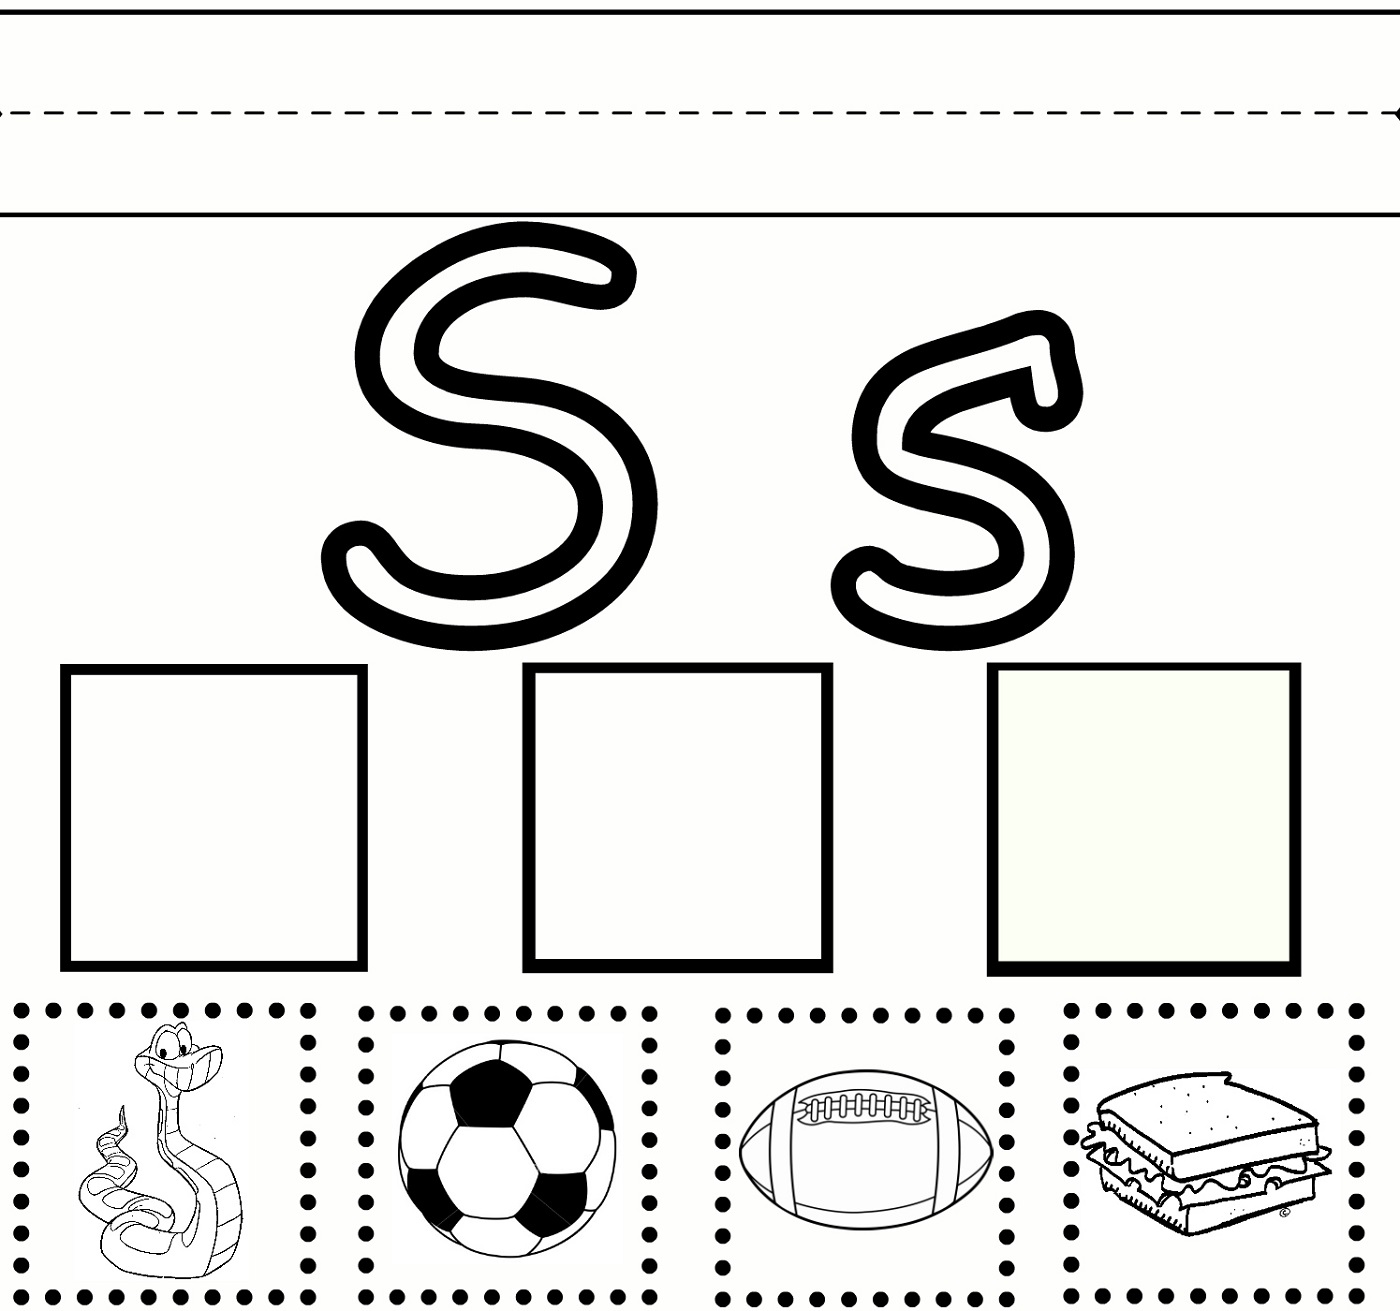 S worksheets activity